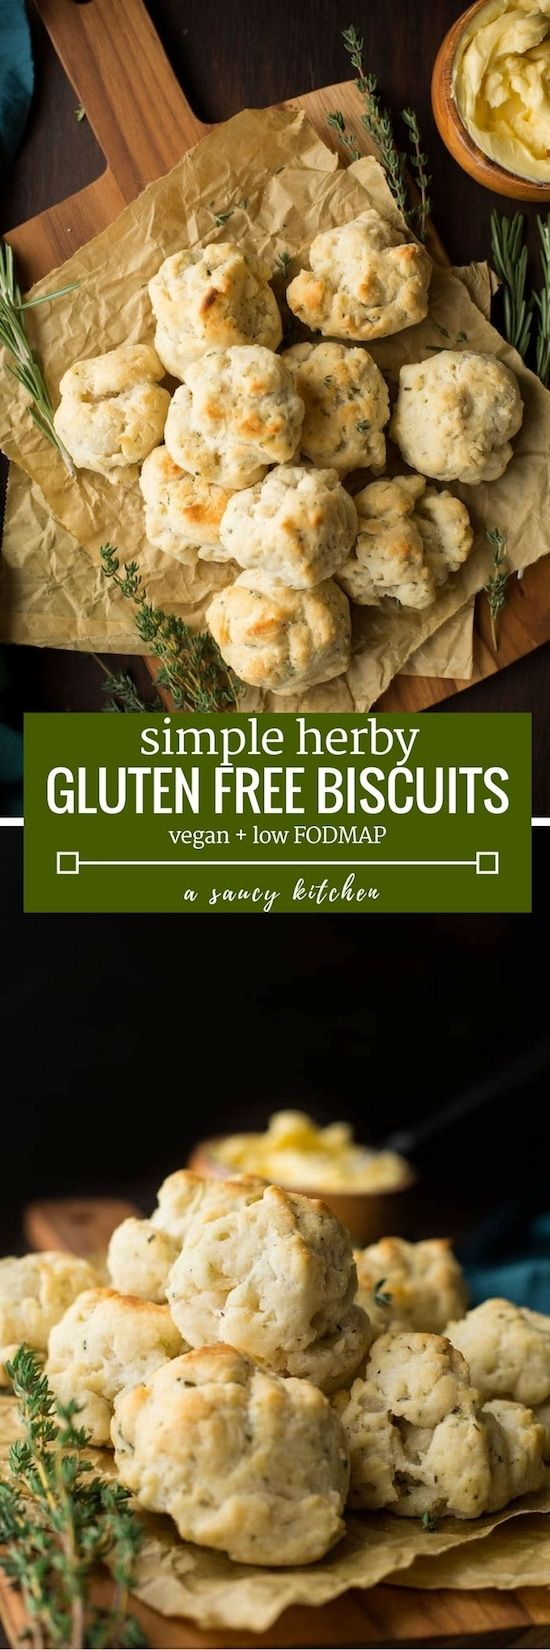 Vegan & gluten free biscuits packed with herbs & spices - only nine ingredients + easy to make!